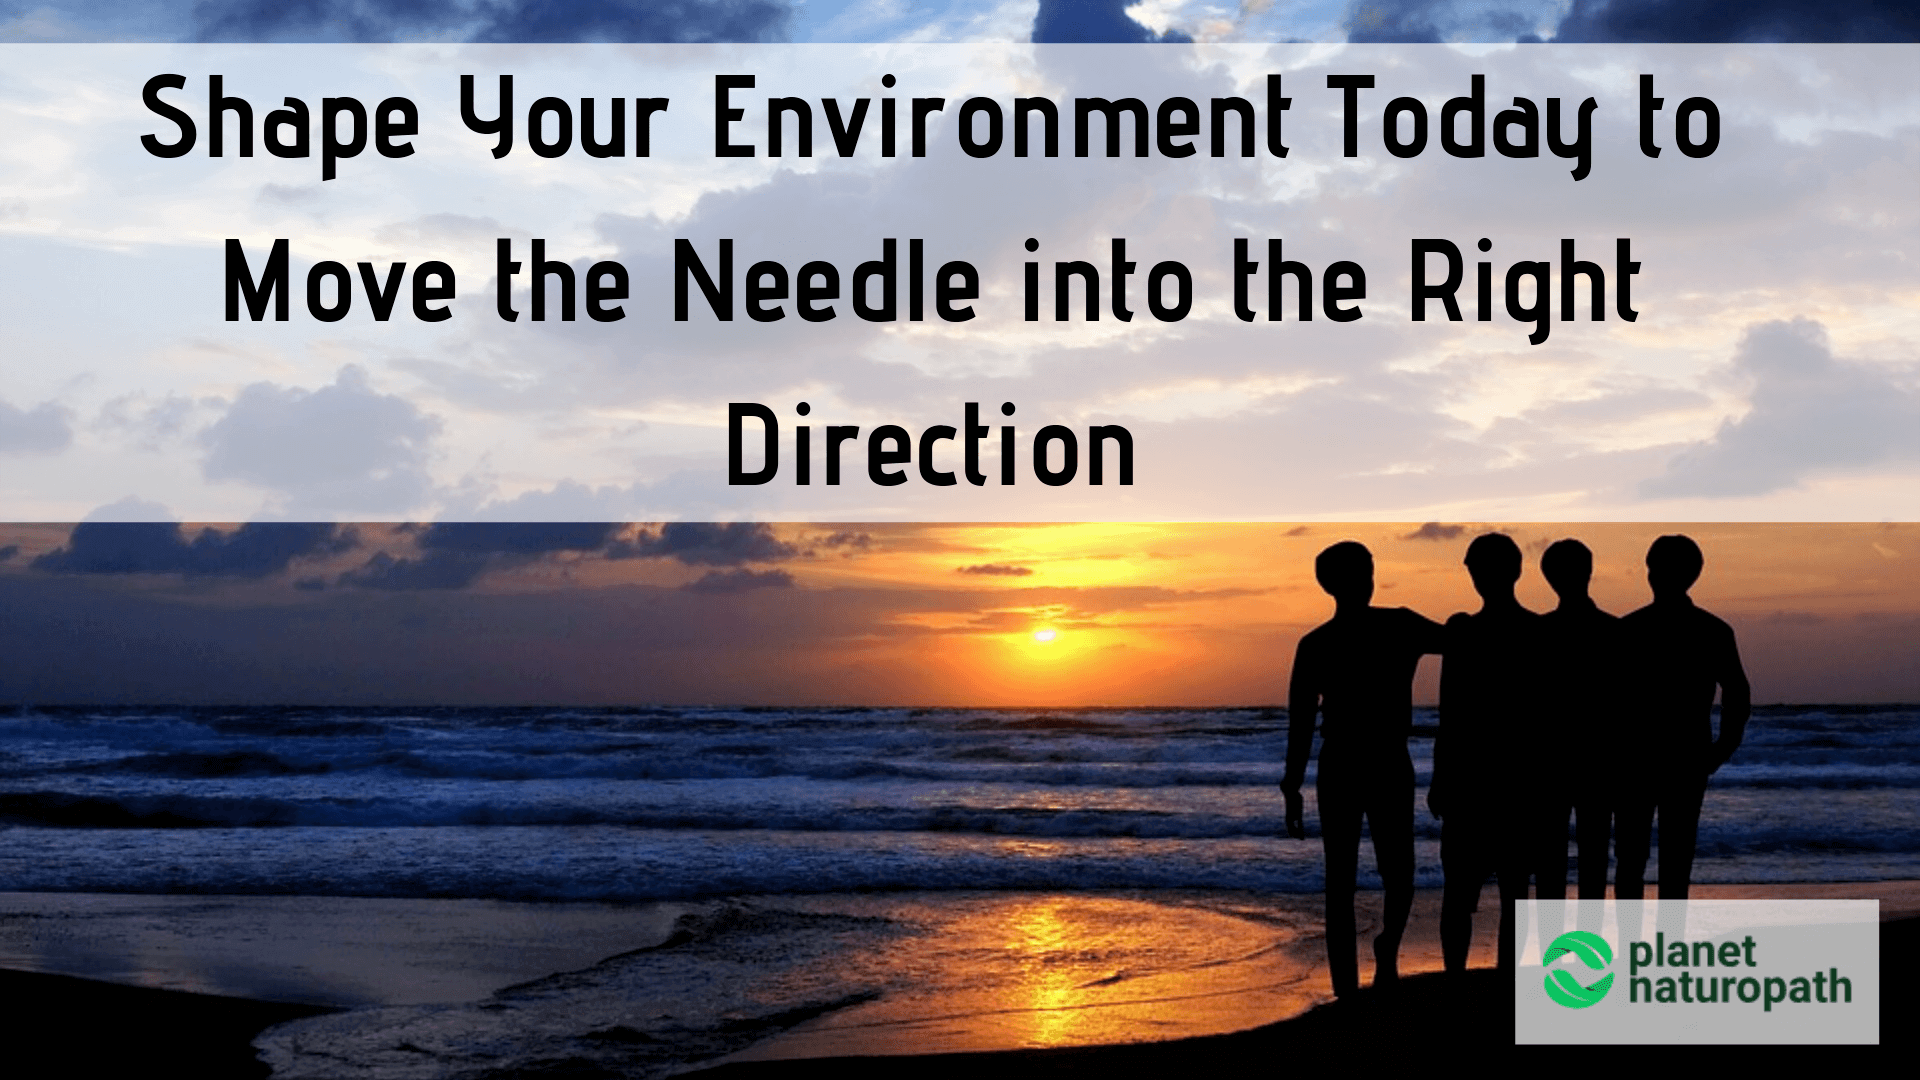 Shape-Your-Environment-Today-to-Move-the-Needle-into-the-Right-Direction